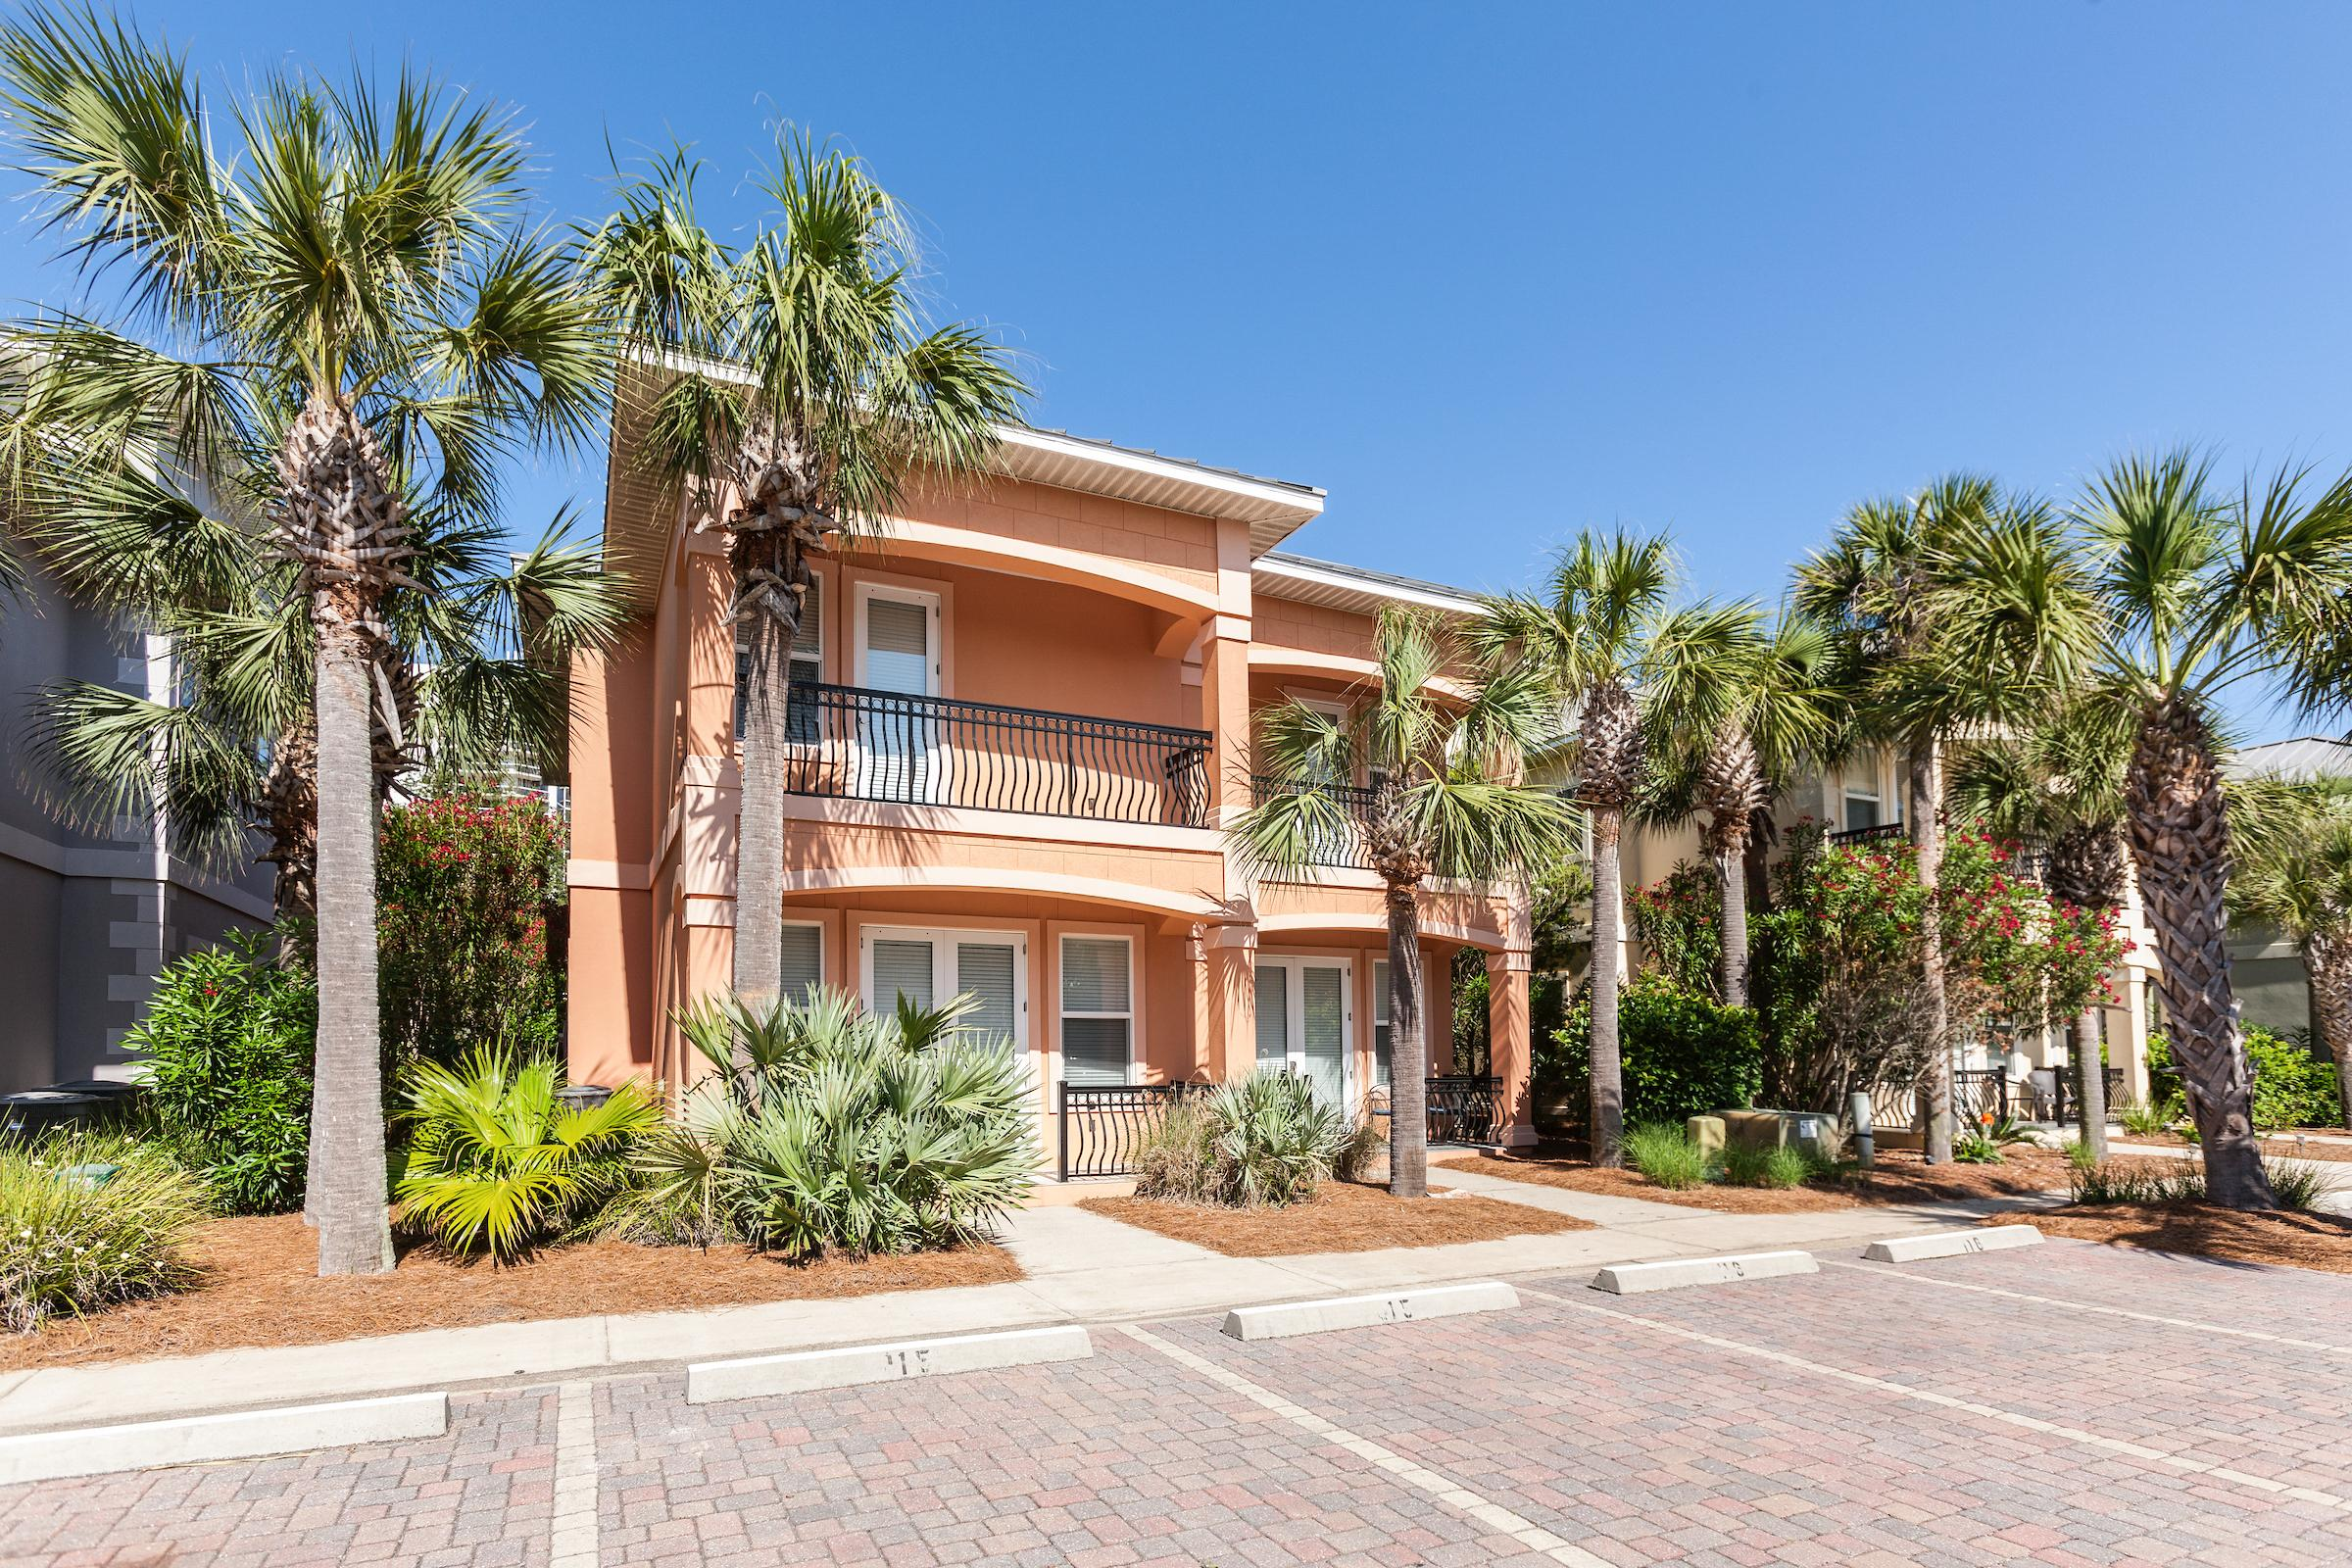 Welcome to Miramar Beach Villas! This condo is professionally managed by TurnKey Vacation Rentals.